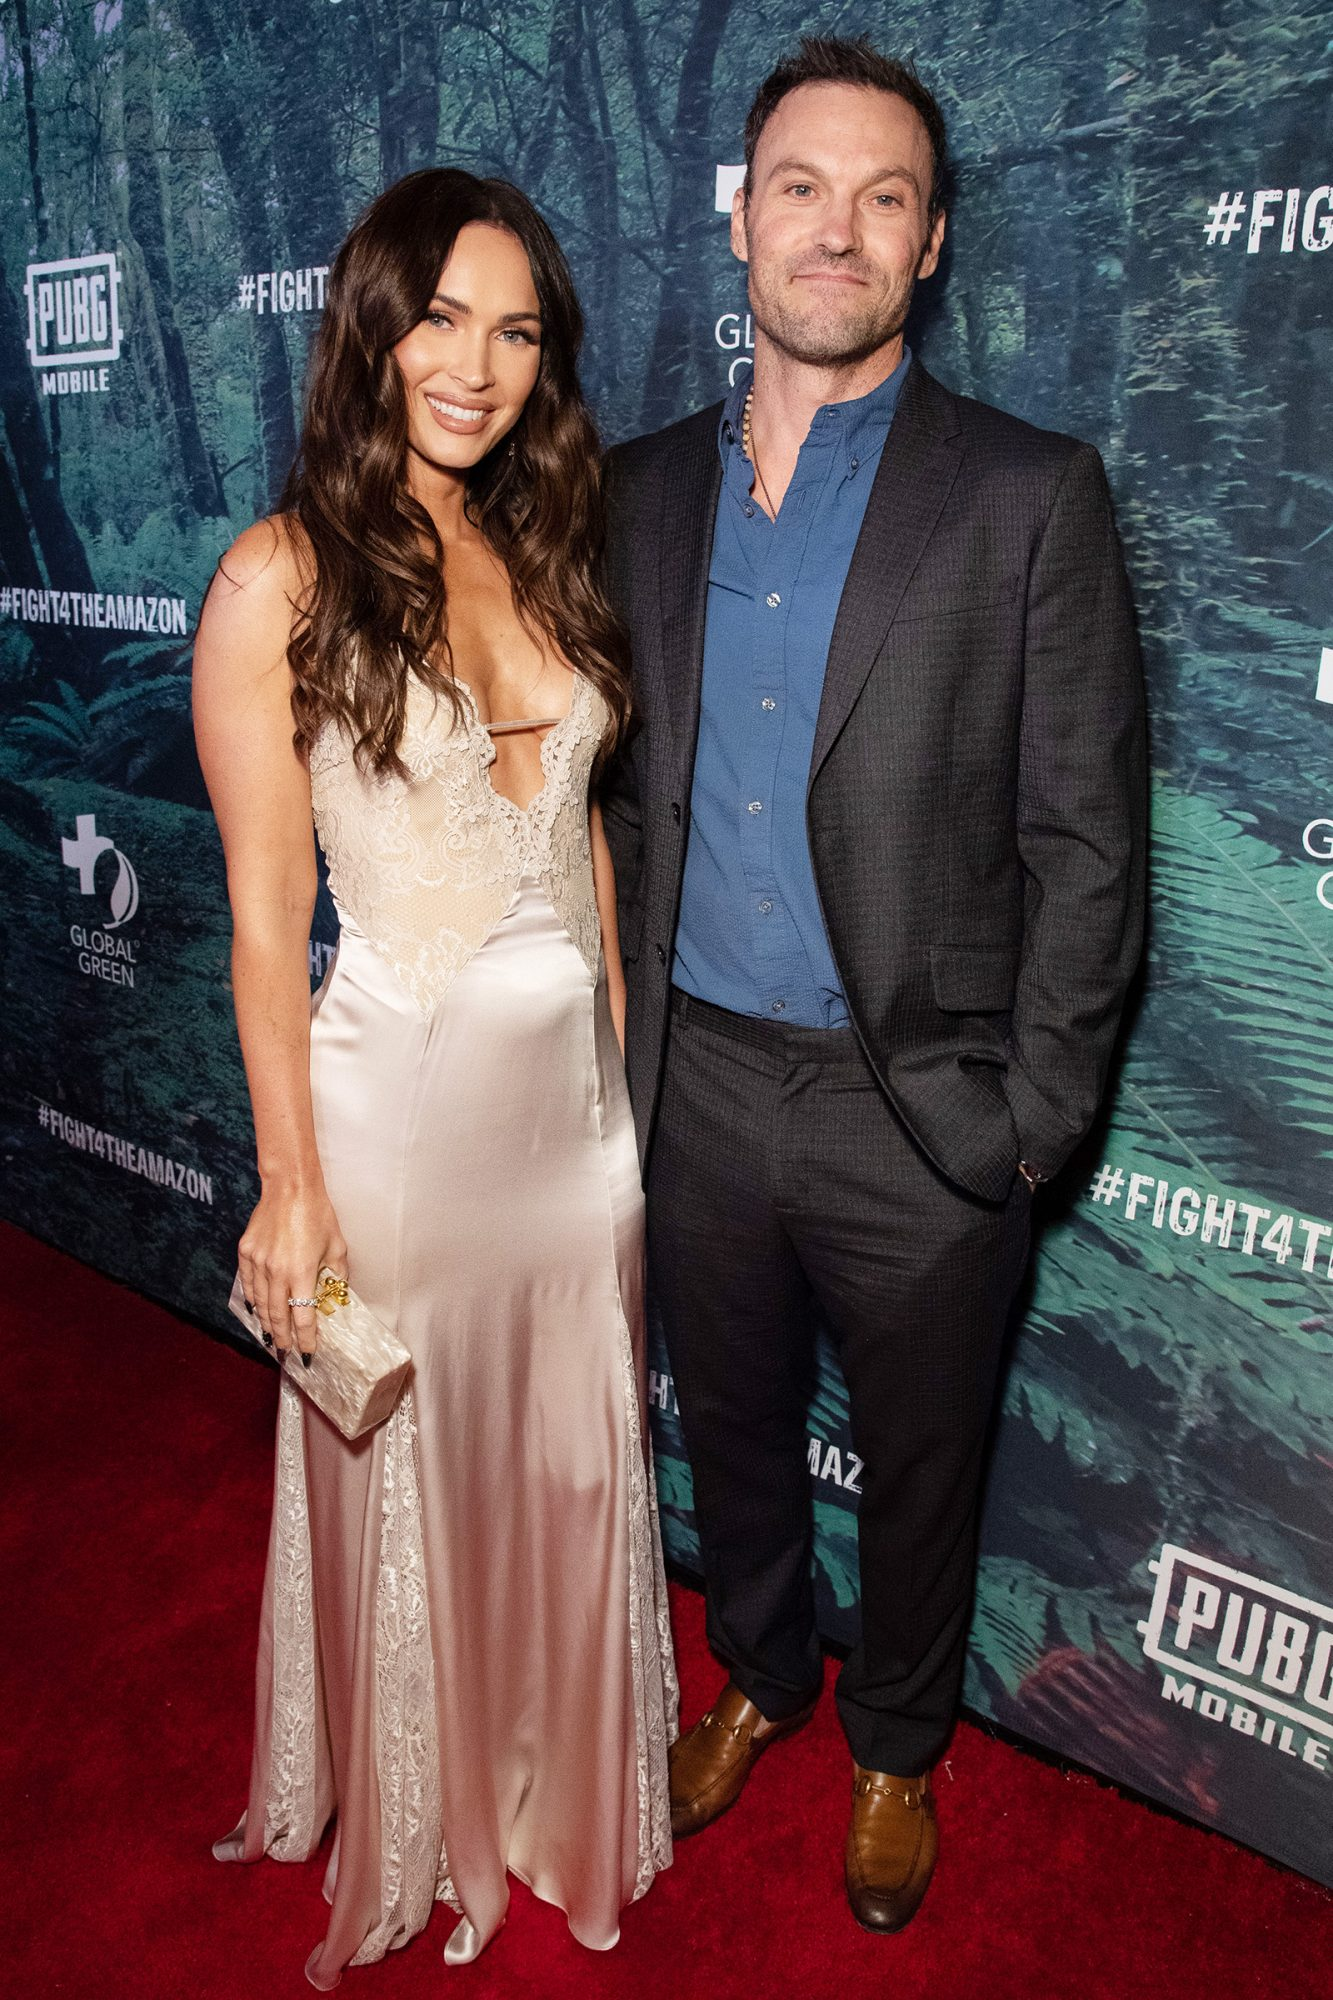 Megan Fox and Brian Austin Green PUBG Mobile's #FIGHT4THEAMAZON Event, Los Angeles, USA - 09 Dec 2019